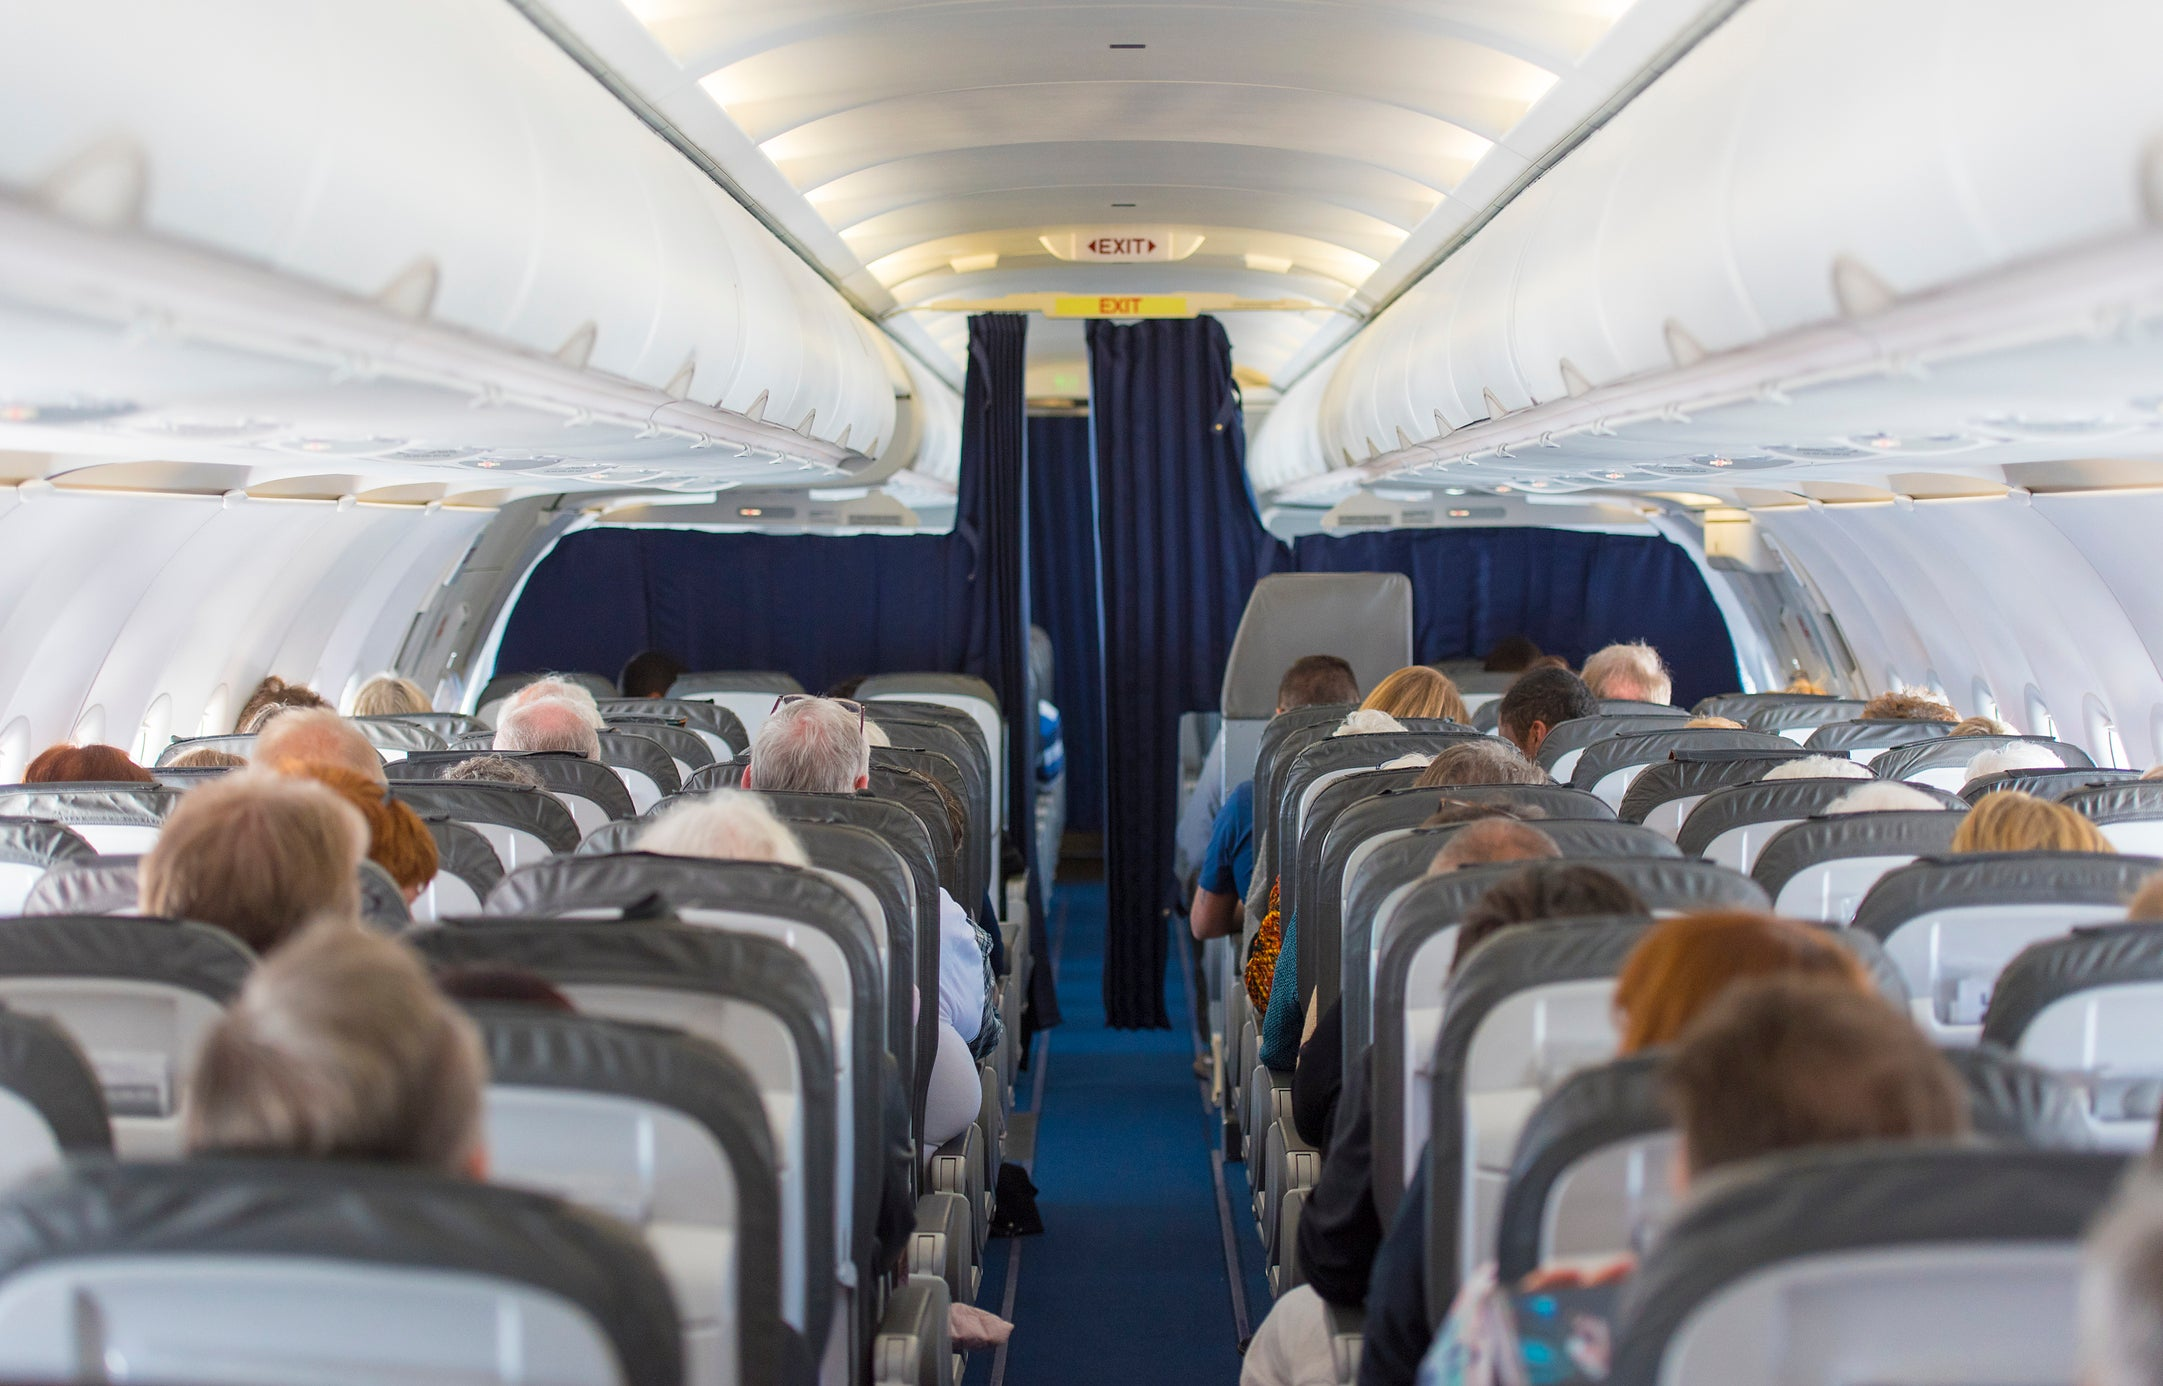 Boeing and Airbus Both Study Coronavirus Risk on Airplanes, Report Says | The Motley Fool